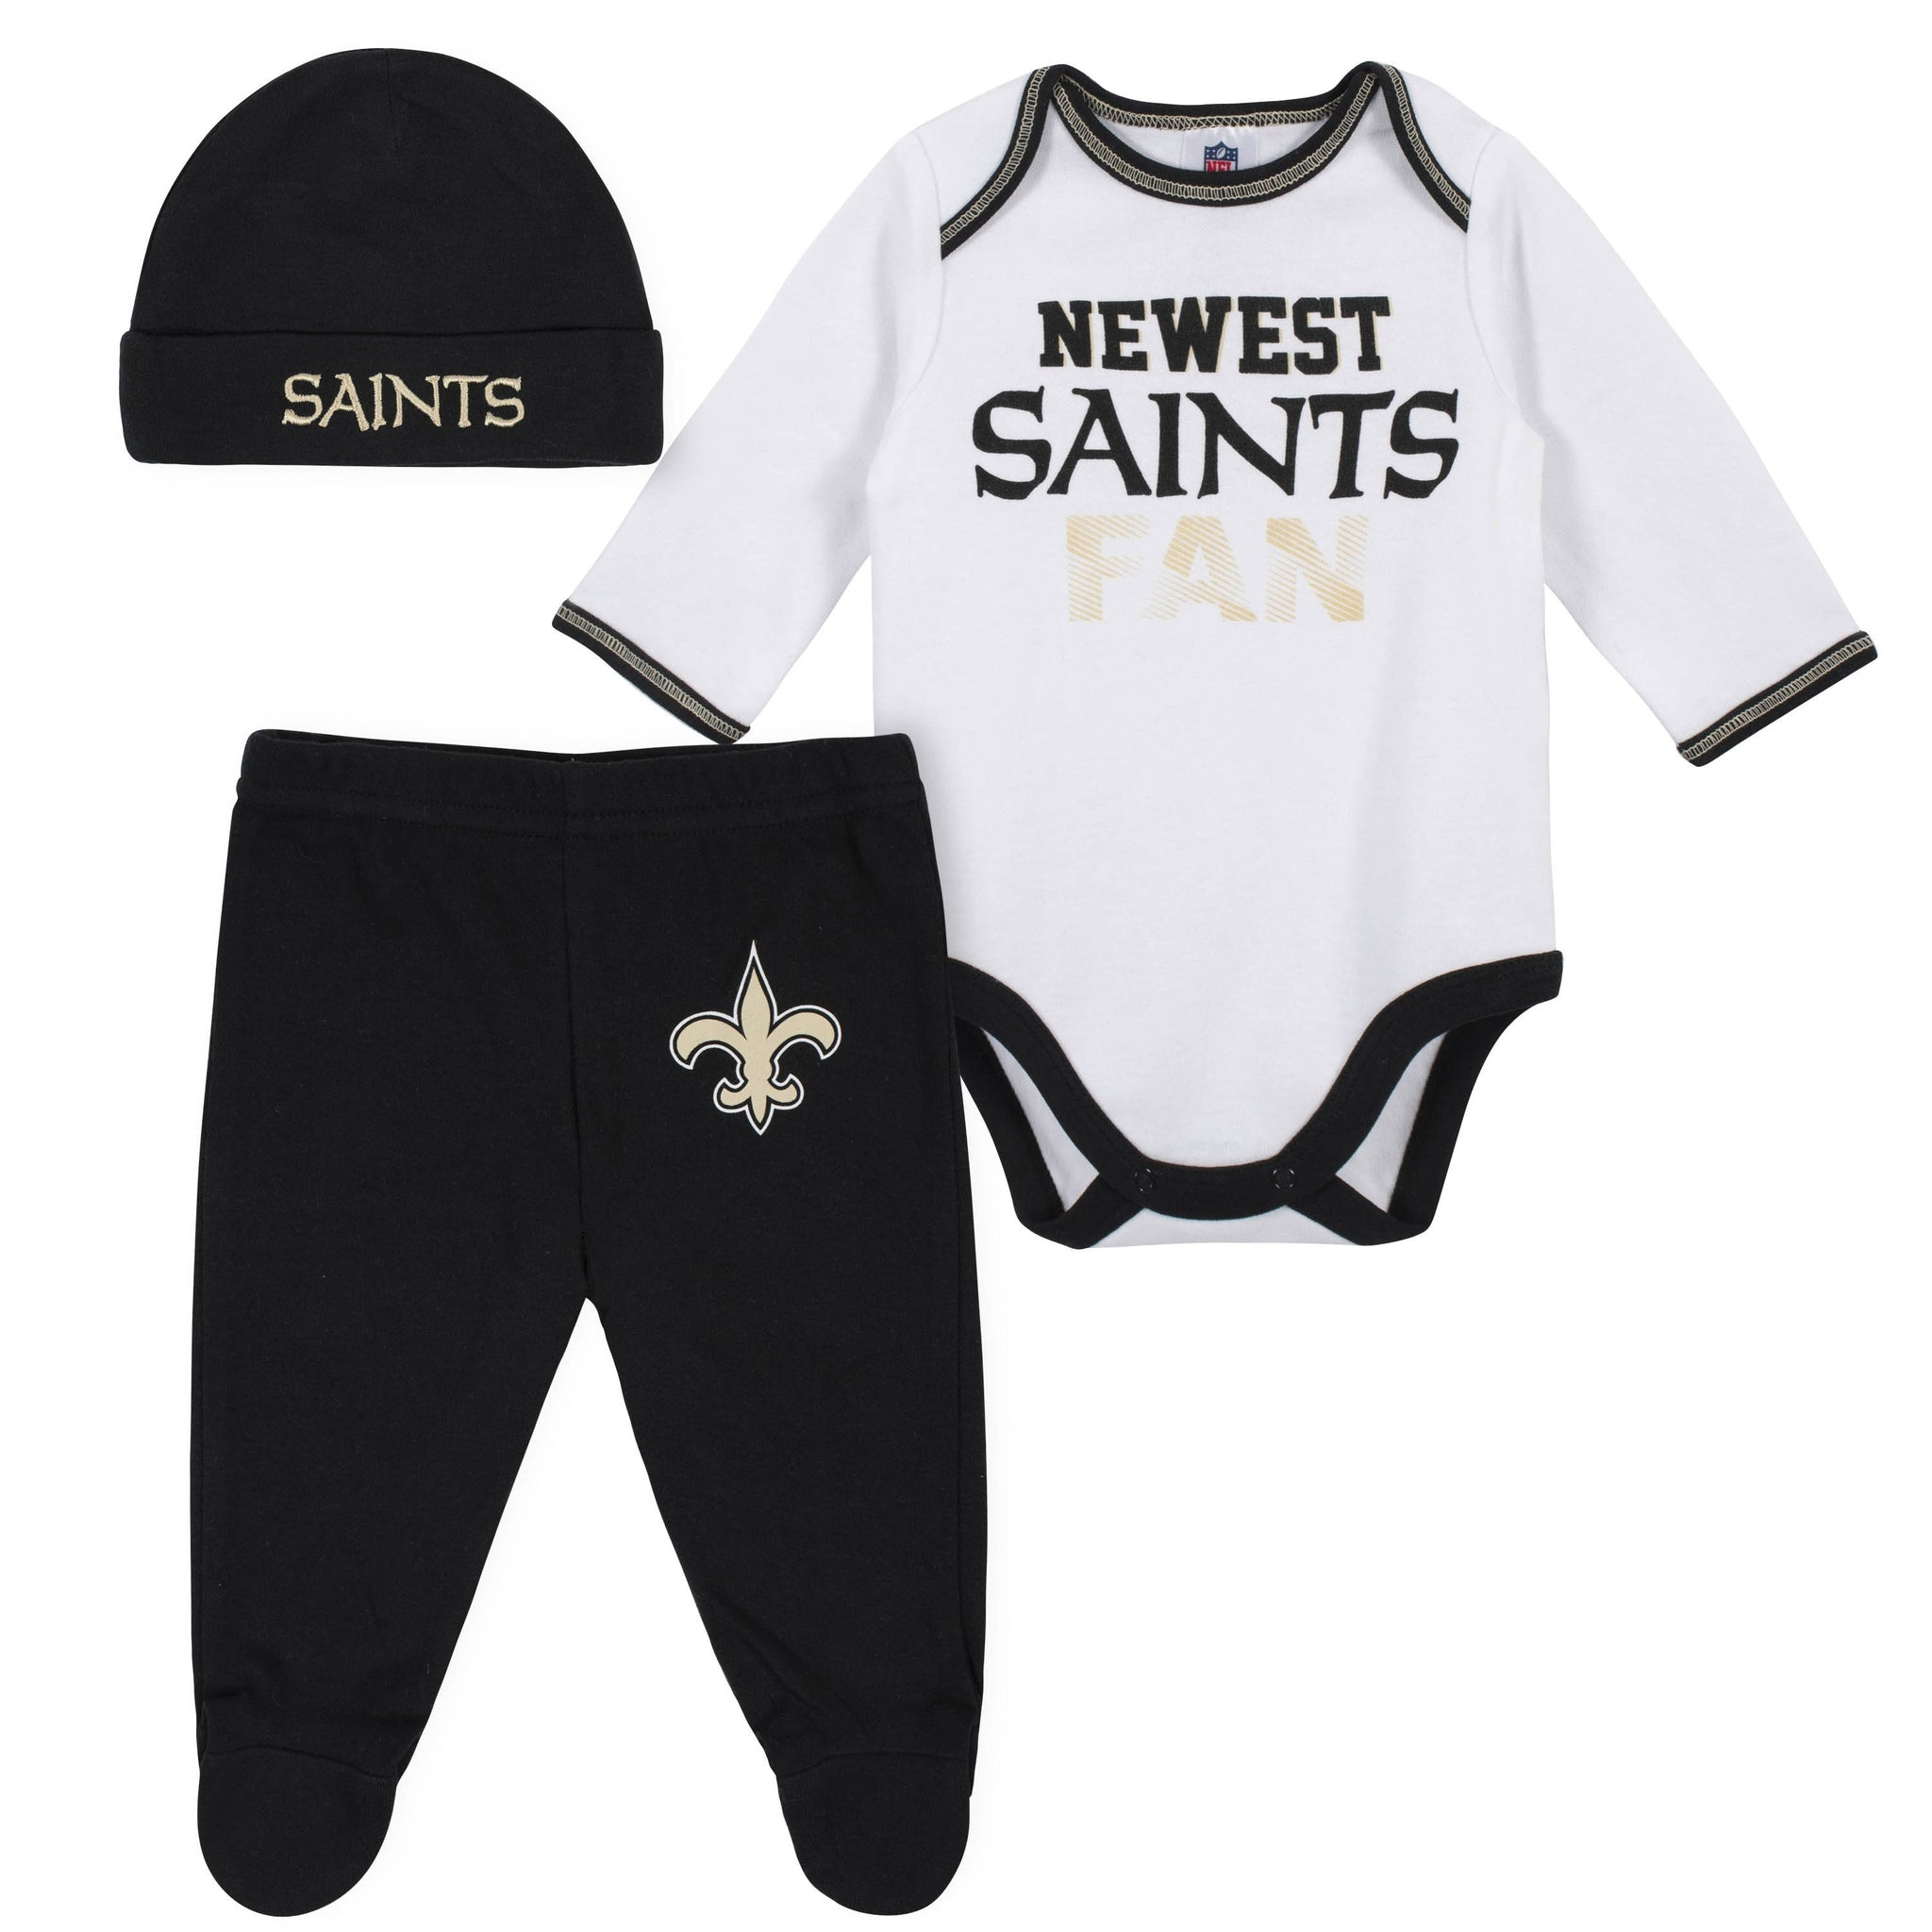 quality design 25e5f a6e11 New Orleans Saints Baby Clothing | Gerber Childrenswear